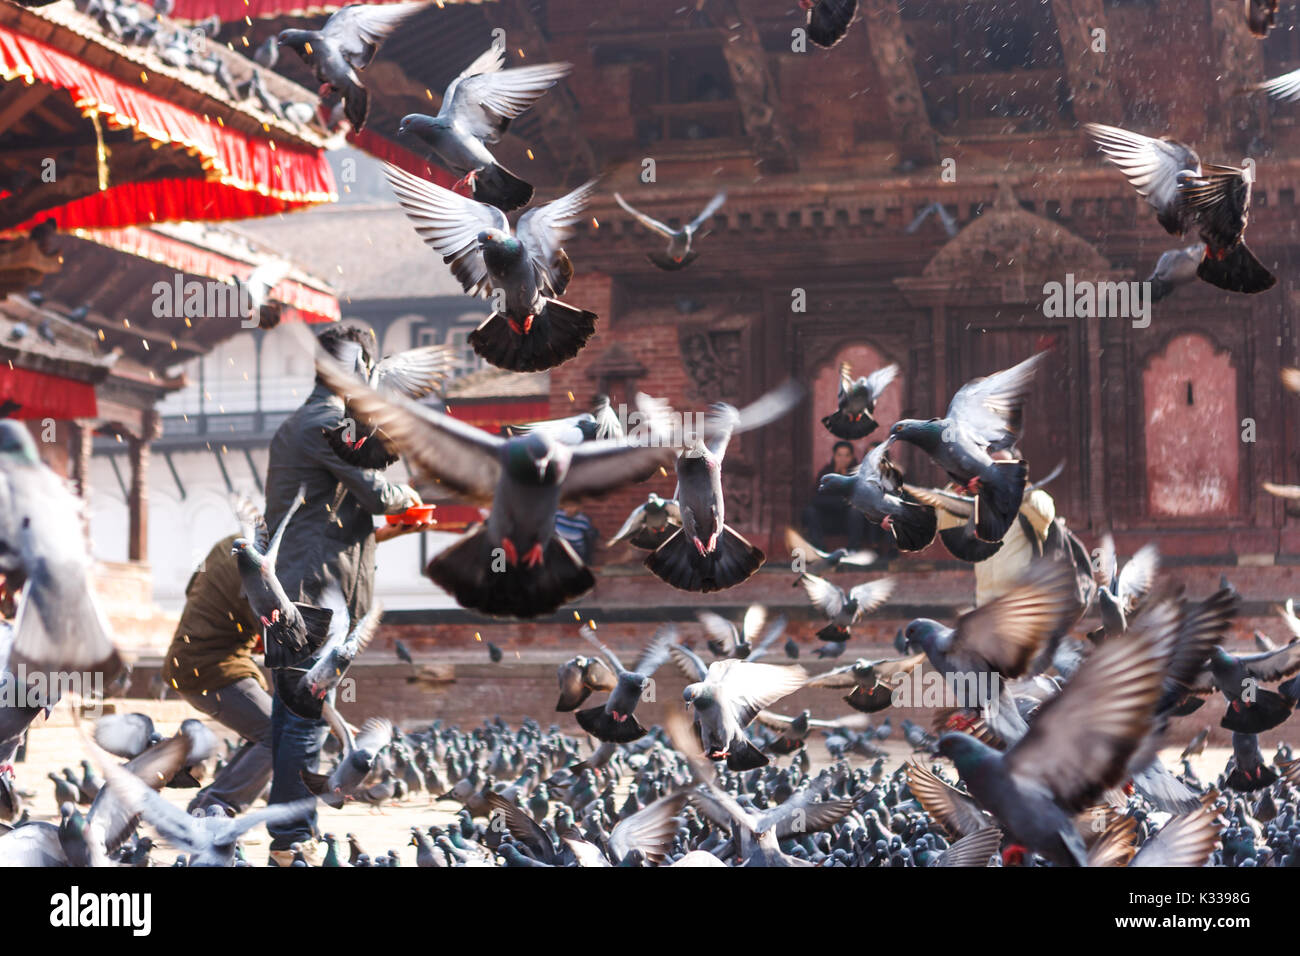 Pigeons covering Kathmandu's Durbar square's temples and pagodas - Stock Image